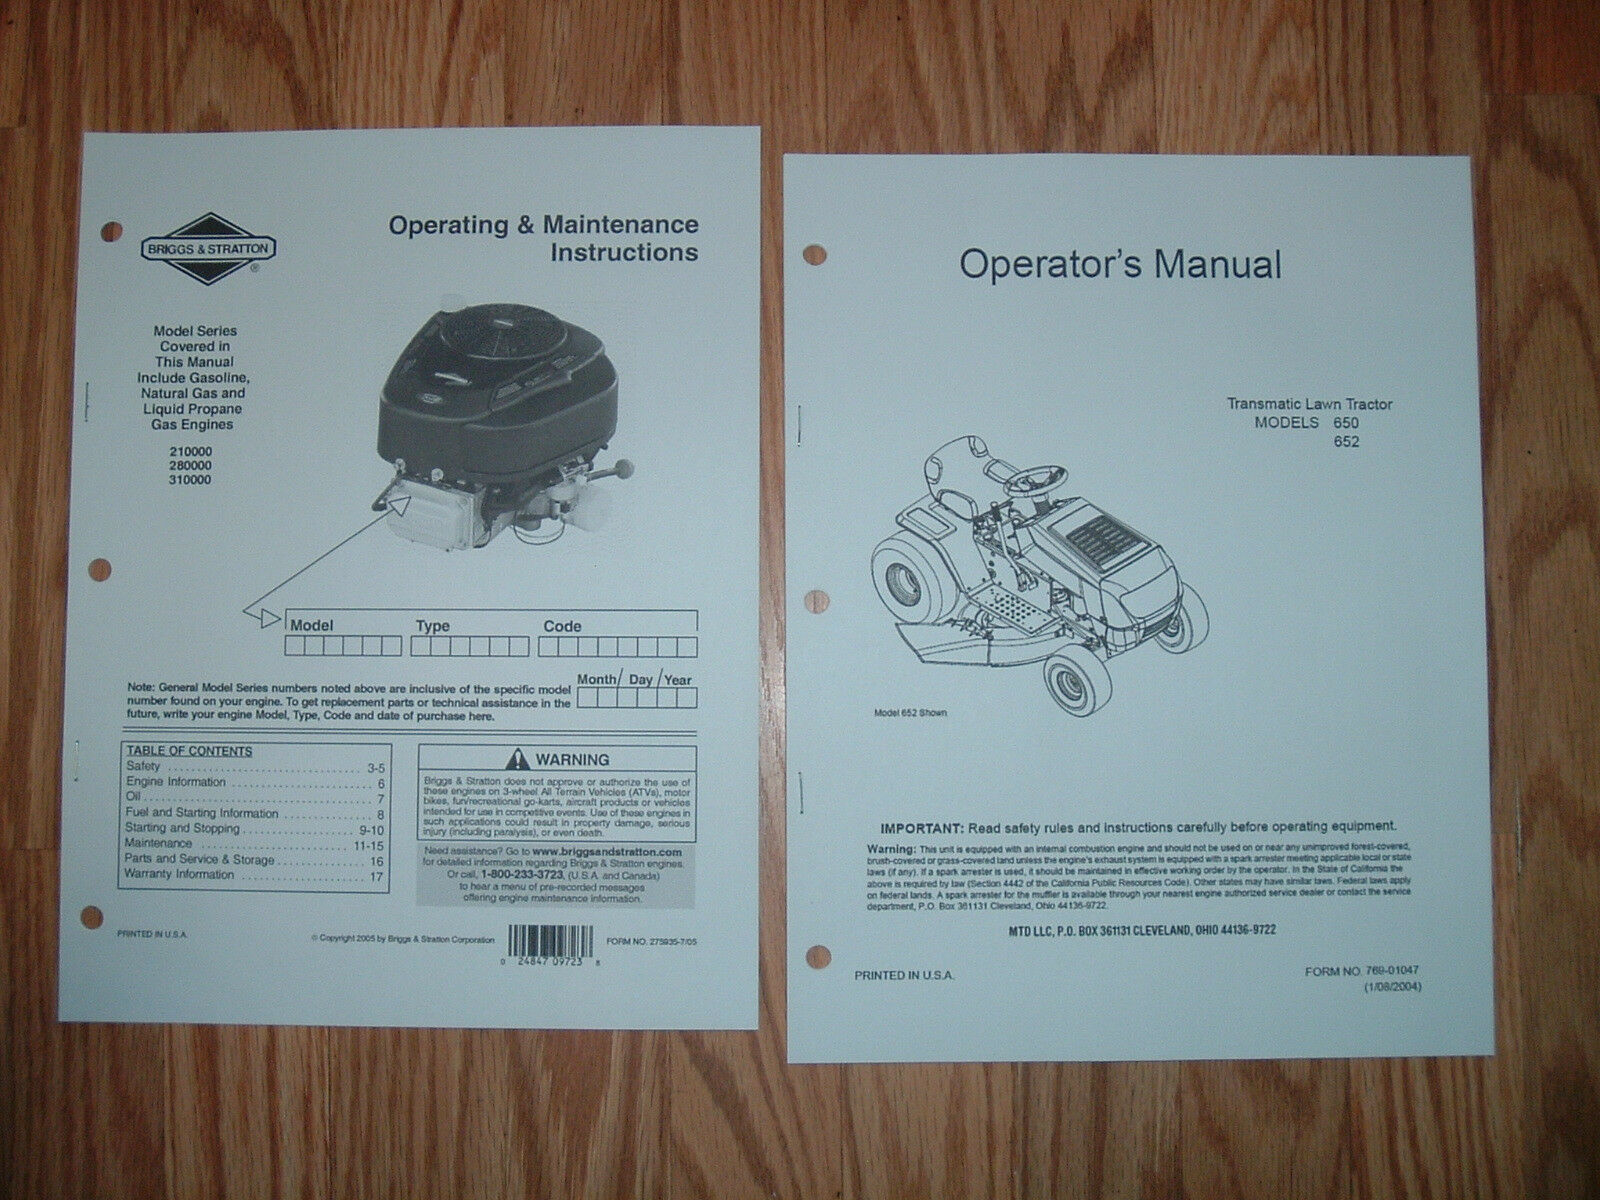 Mtd Models 650 652 Lawn Tractor And Engine Owners Manuals With Mower Parts Diagram On List For 1 Of 1only Available